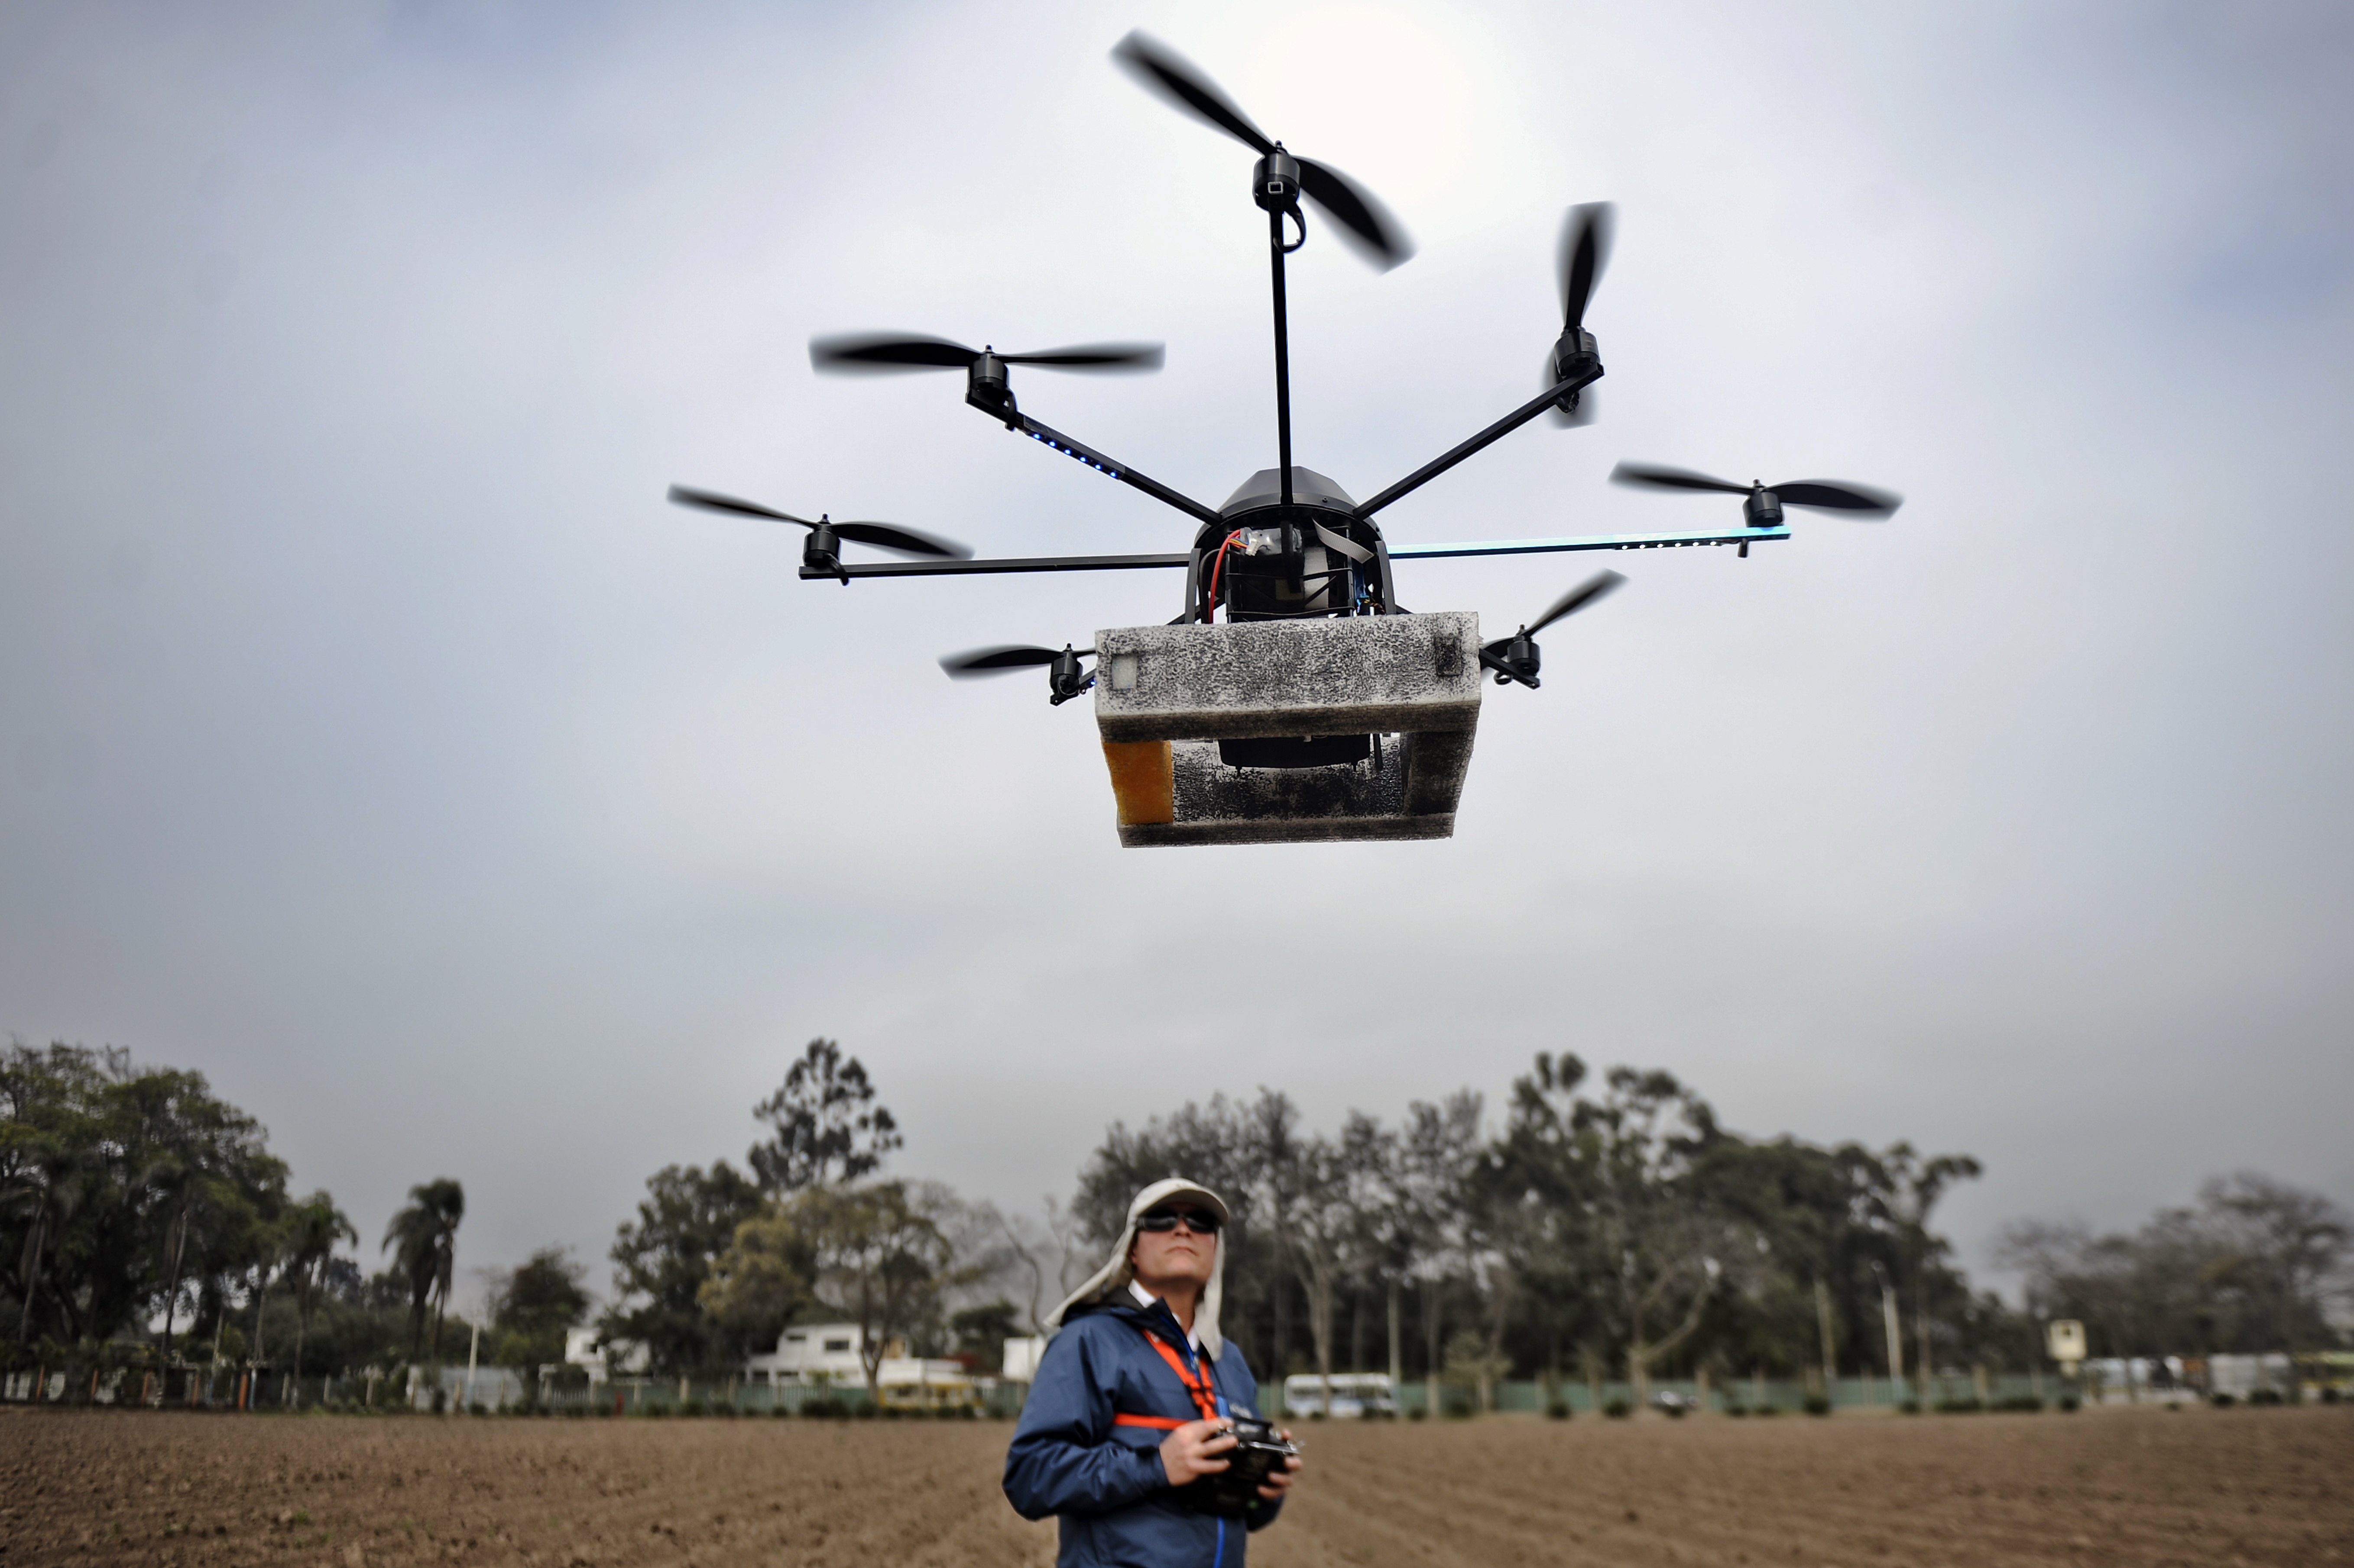 Commercial drone operators fall into two categories: the kind that want to use just an few drones, and the kind that want entire flying networks of remote copters. (Photo: Getty)